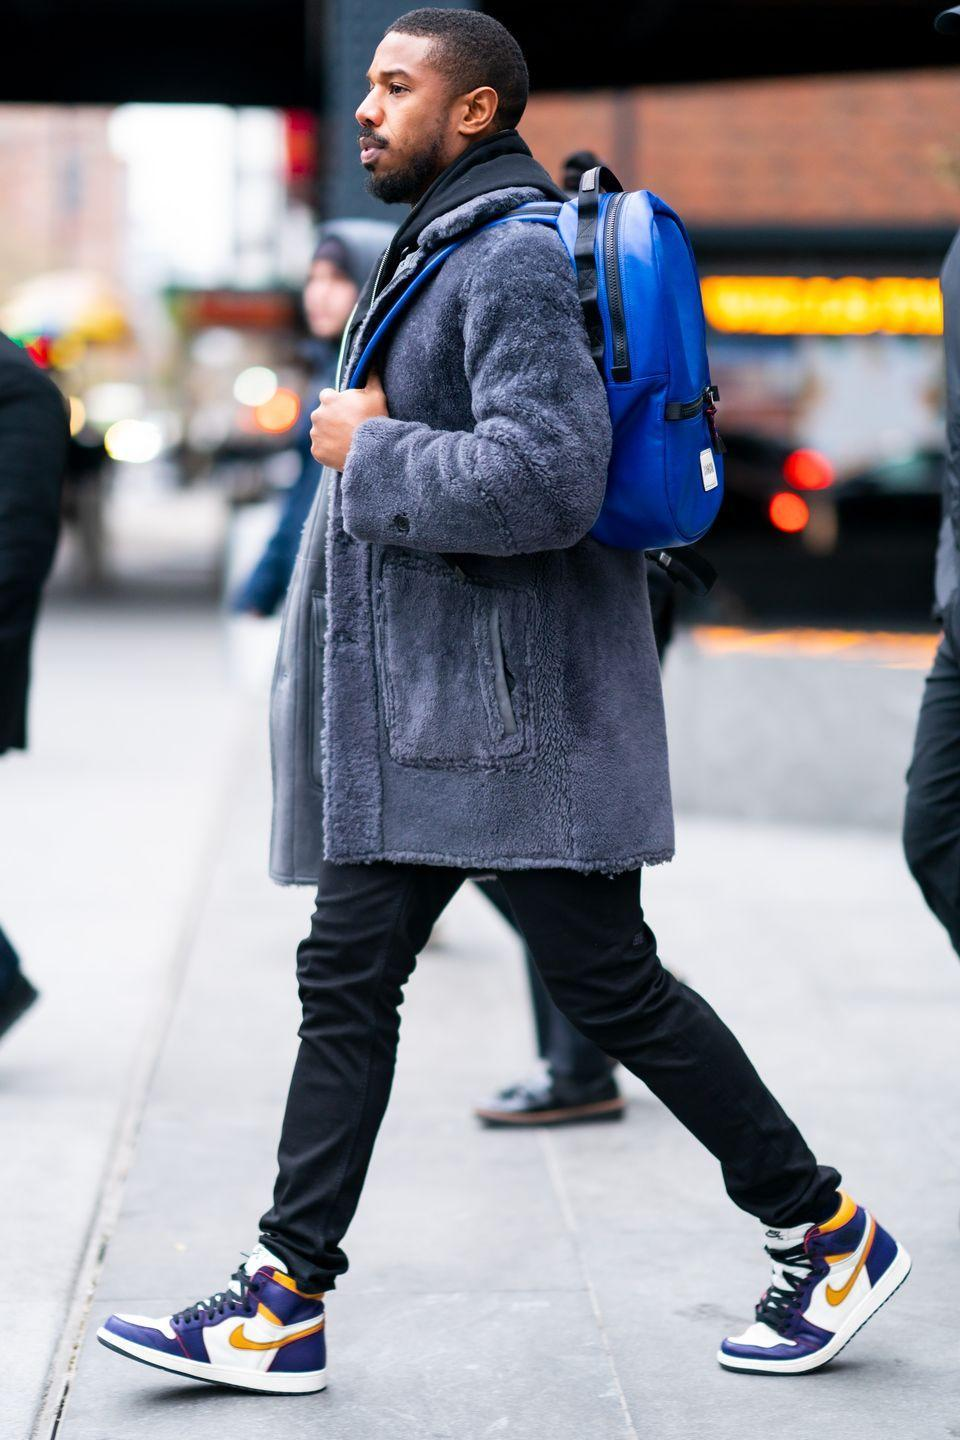 <p>Elevated never has to mean unapproachable. MBJ is wearing a literal backpack, sneakers, and a fluffy jacket. And damn, does it look good.</p>